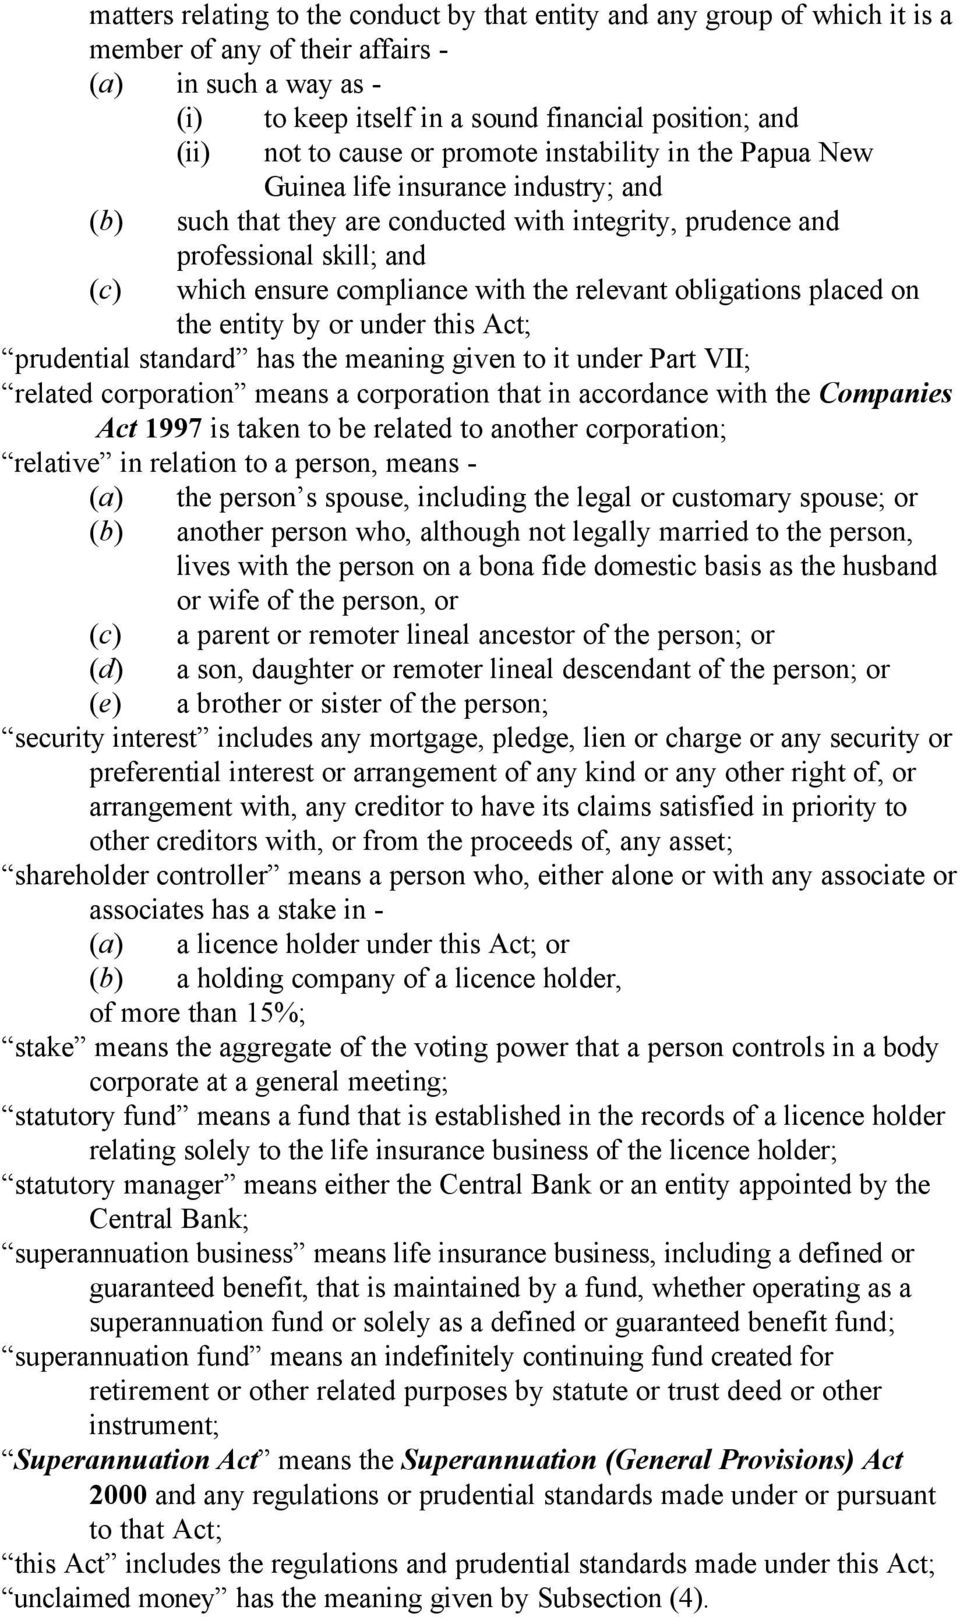 with the relevant obligations placed on the entity by or under this Act; prudential standard has the meaning given to it under Part VII; related corporation means a corporation that in accordance